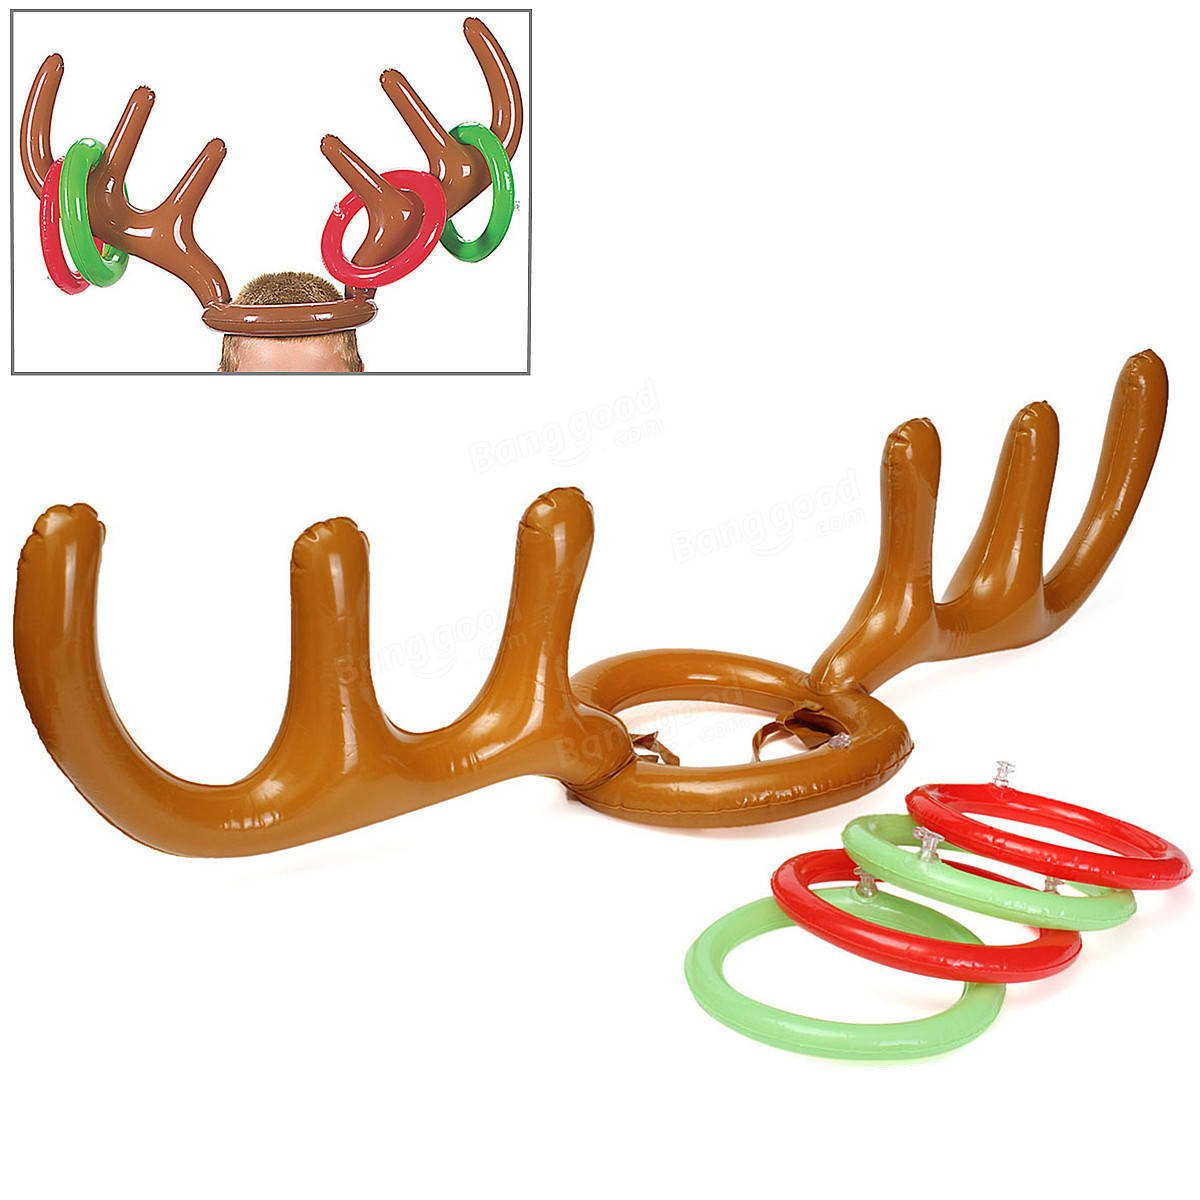 Tintinnabulation Chuck - Set Child Inflatable Santa Funny Reindeer Antler Hat Toss Christma Party Game Supply Toy - Knell Dispose Mob Pass Halo Fling Closed Chain Encircle Slash - 1PCs by Unknown